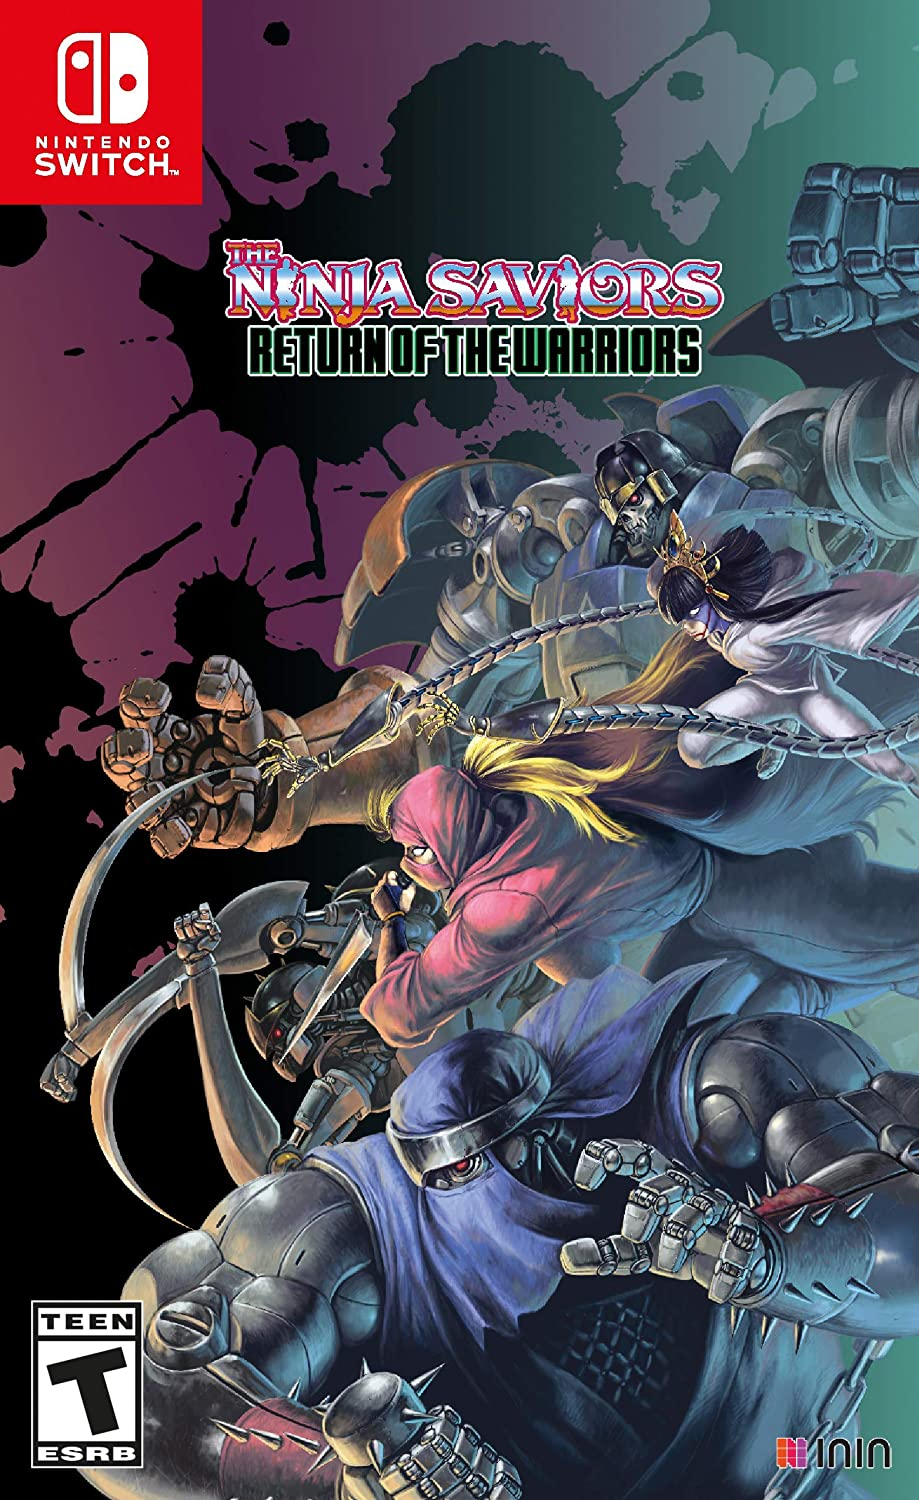 The Ninja Saviors Return of the Warriors for Nintendo Switch ...